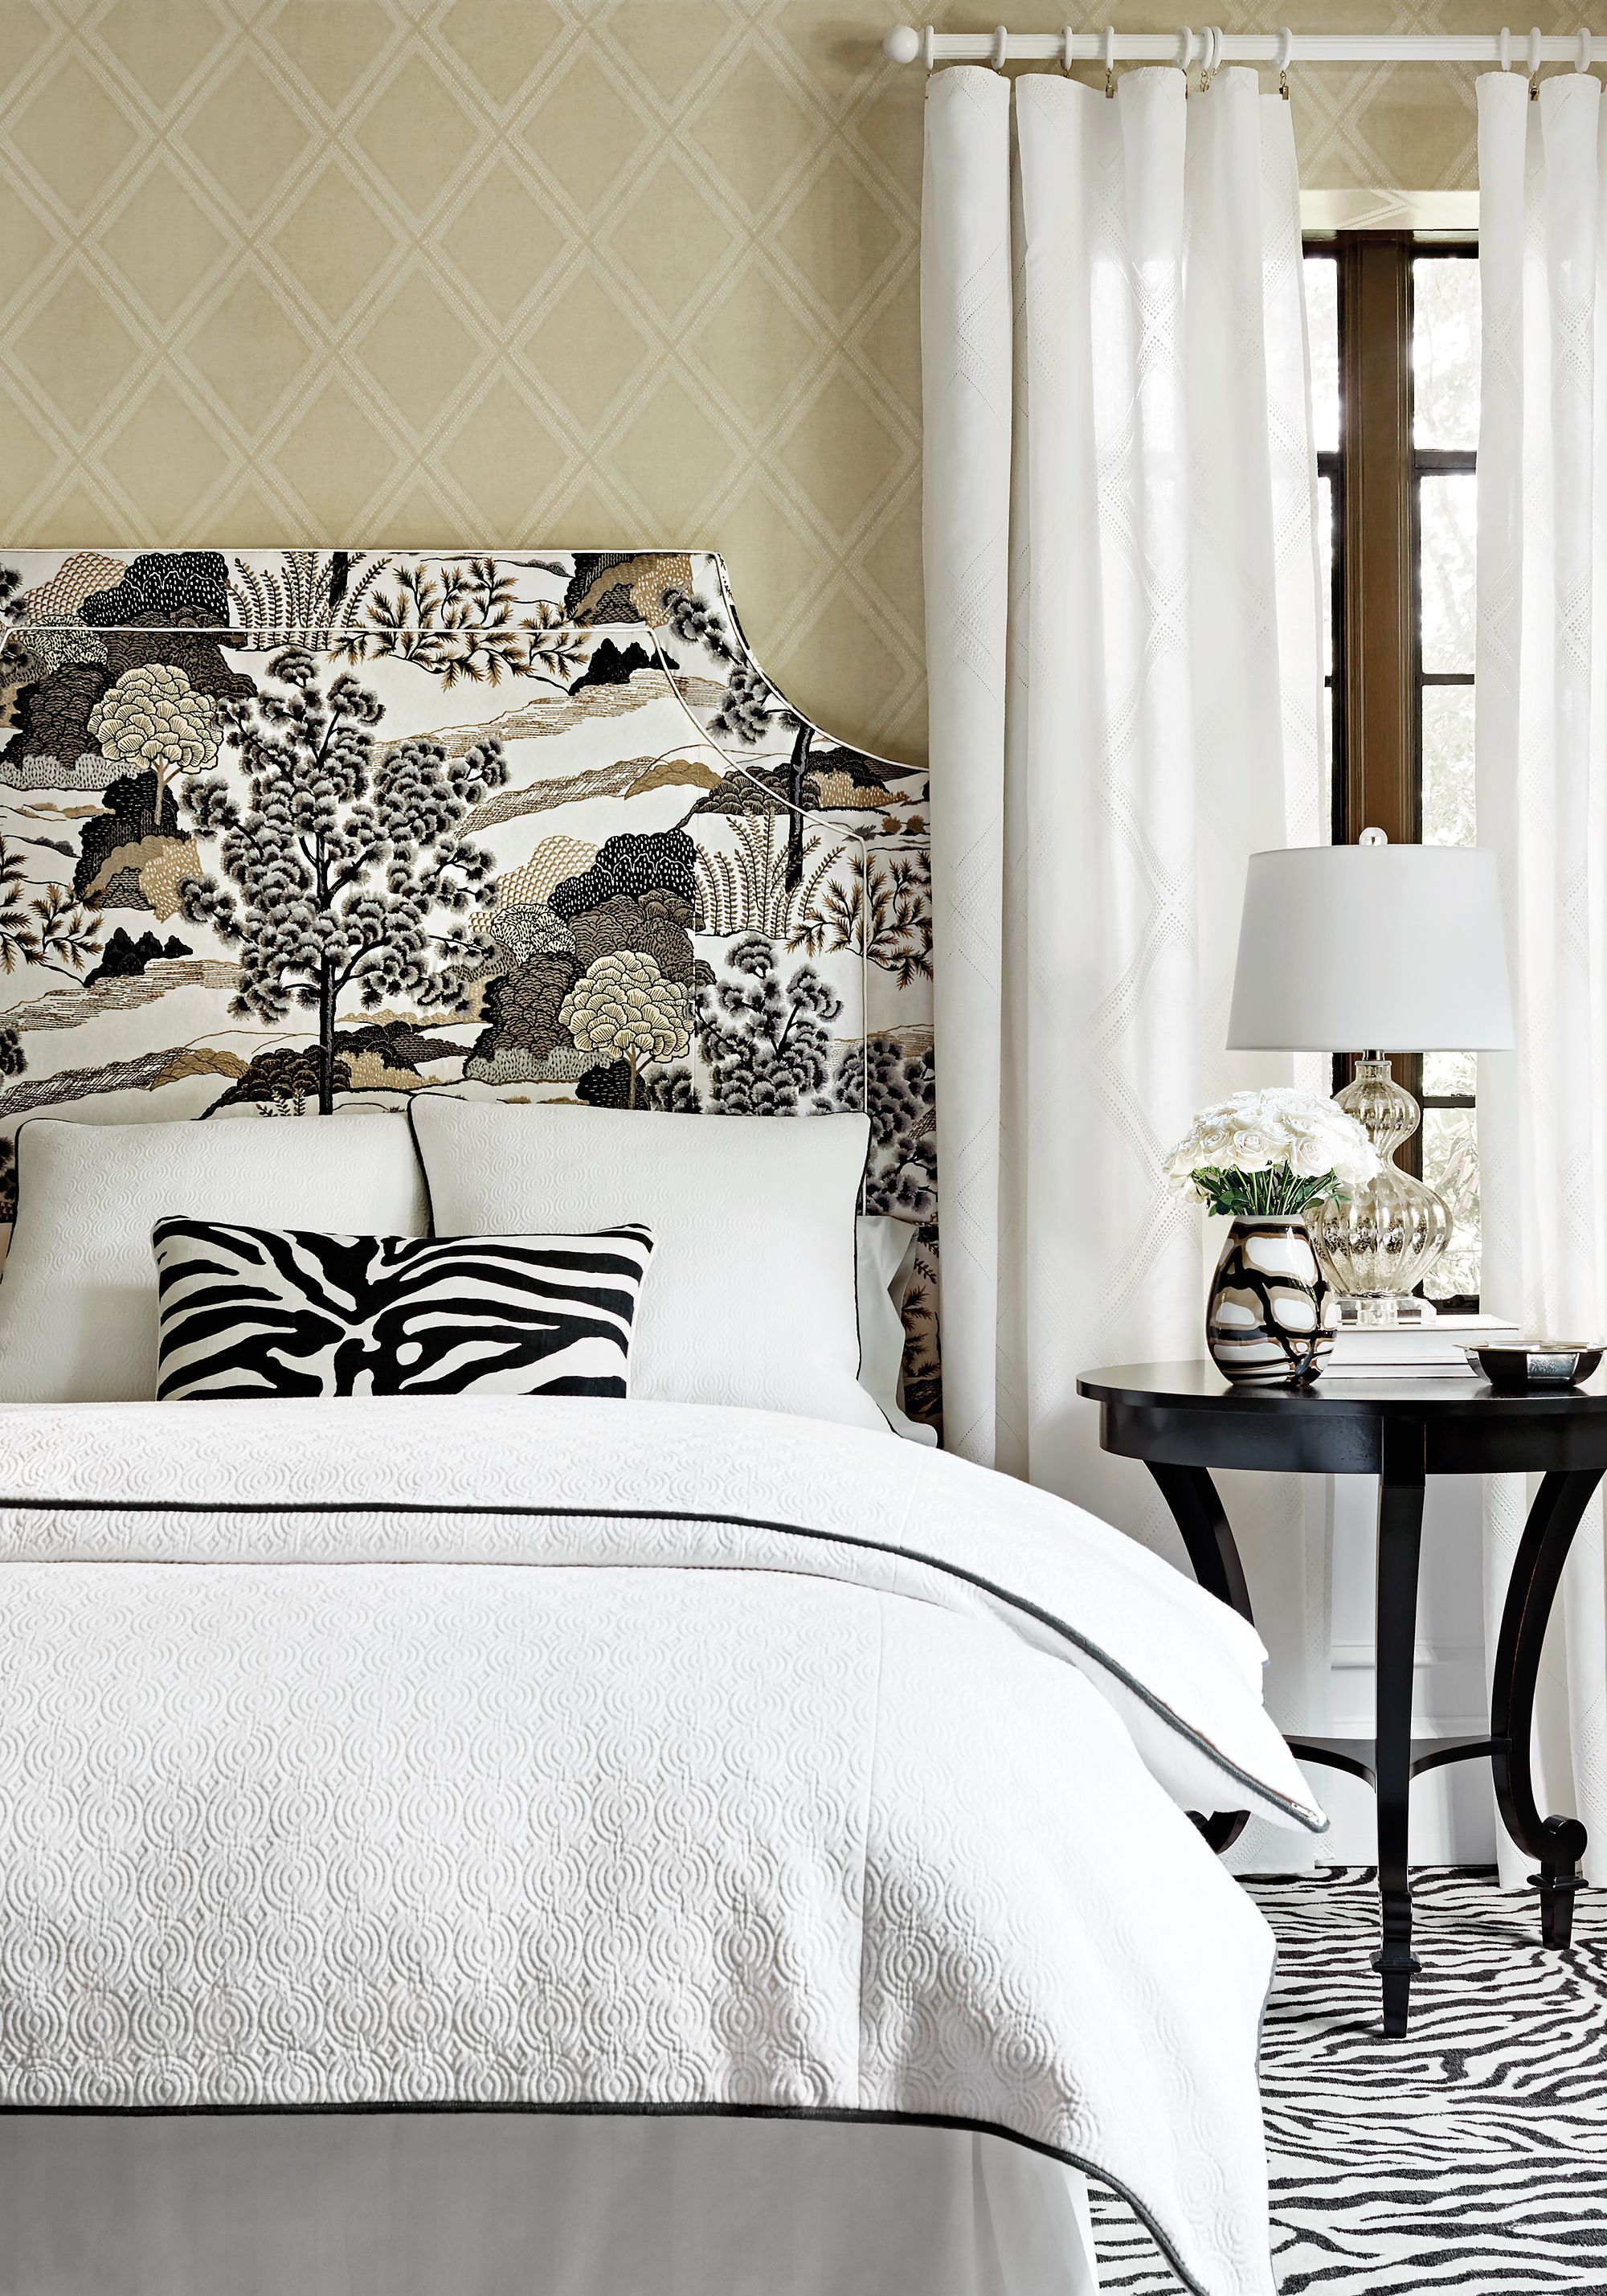 Ridgewood Headboard From Thibaut Fine Furniture In Daintree Printed Fabric